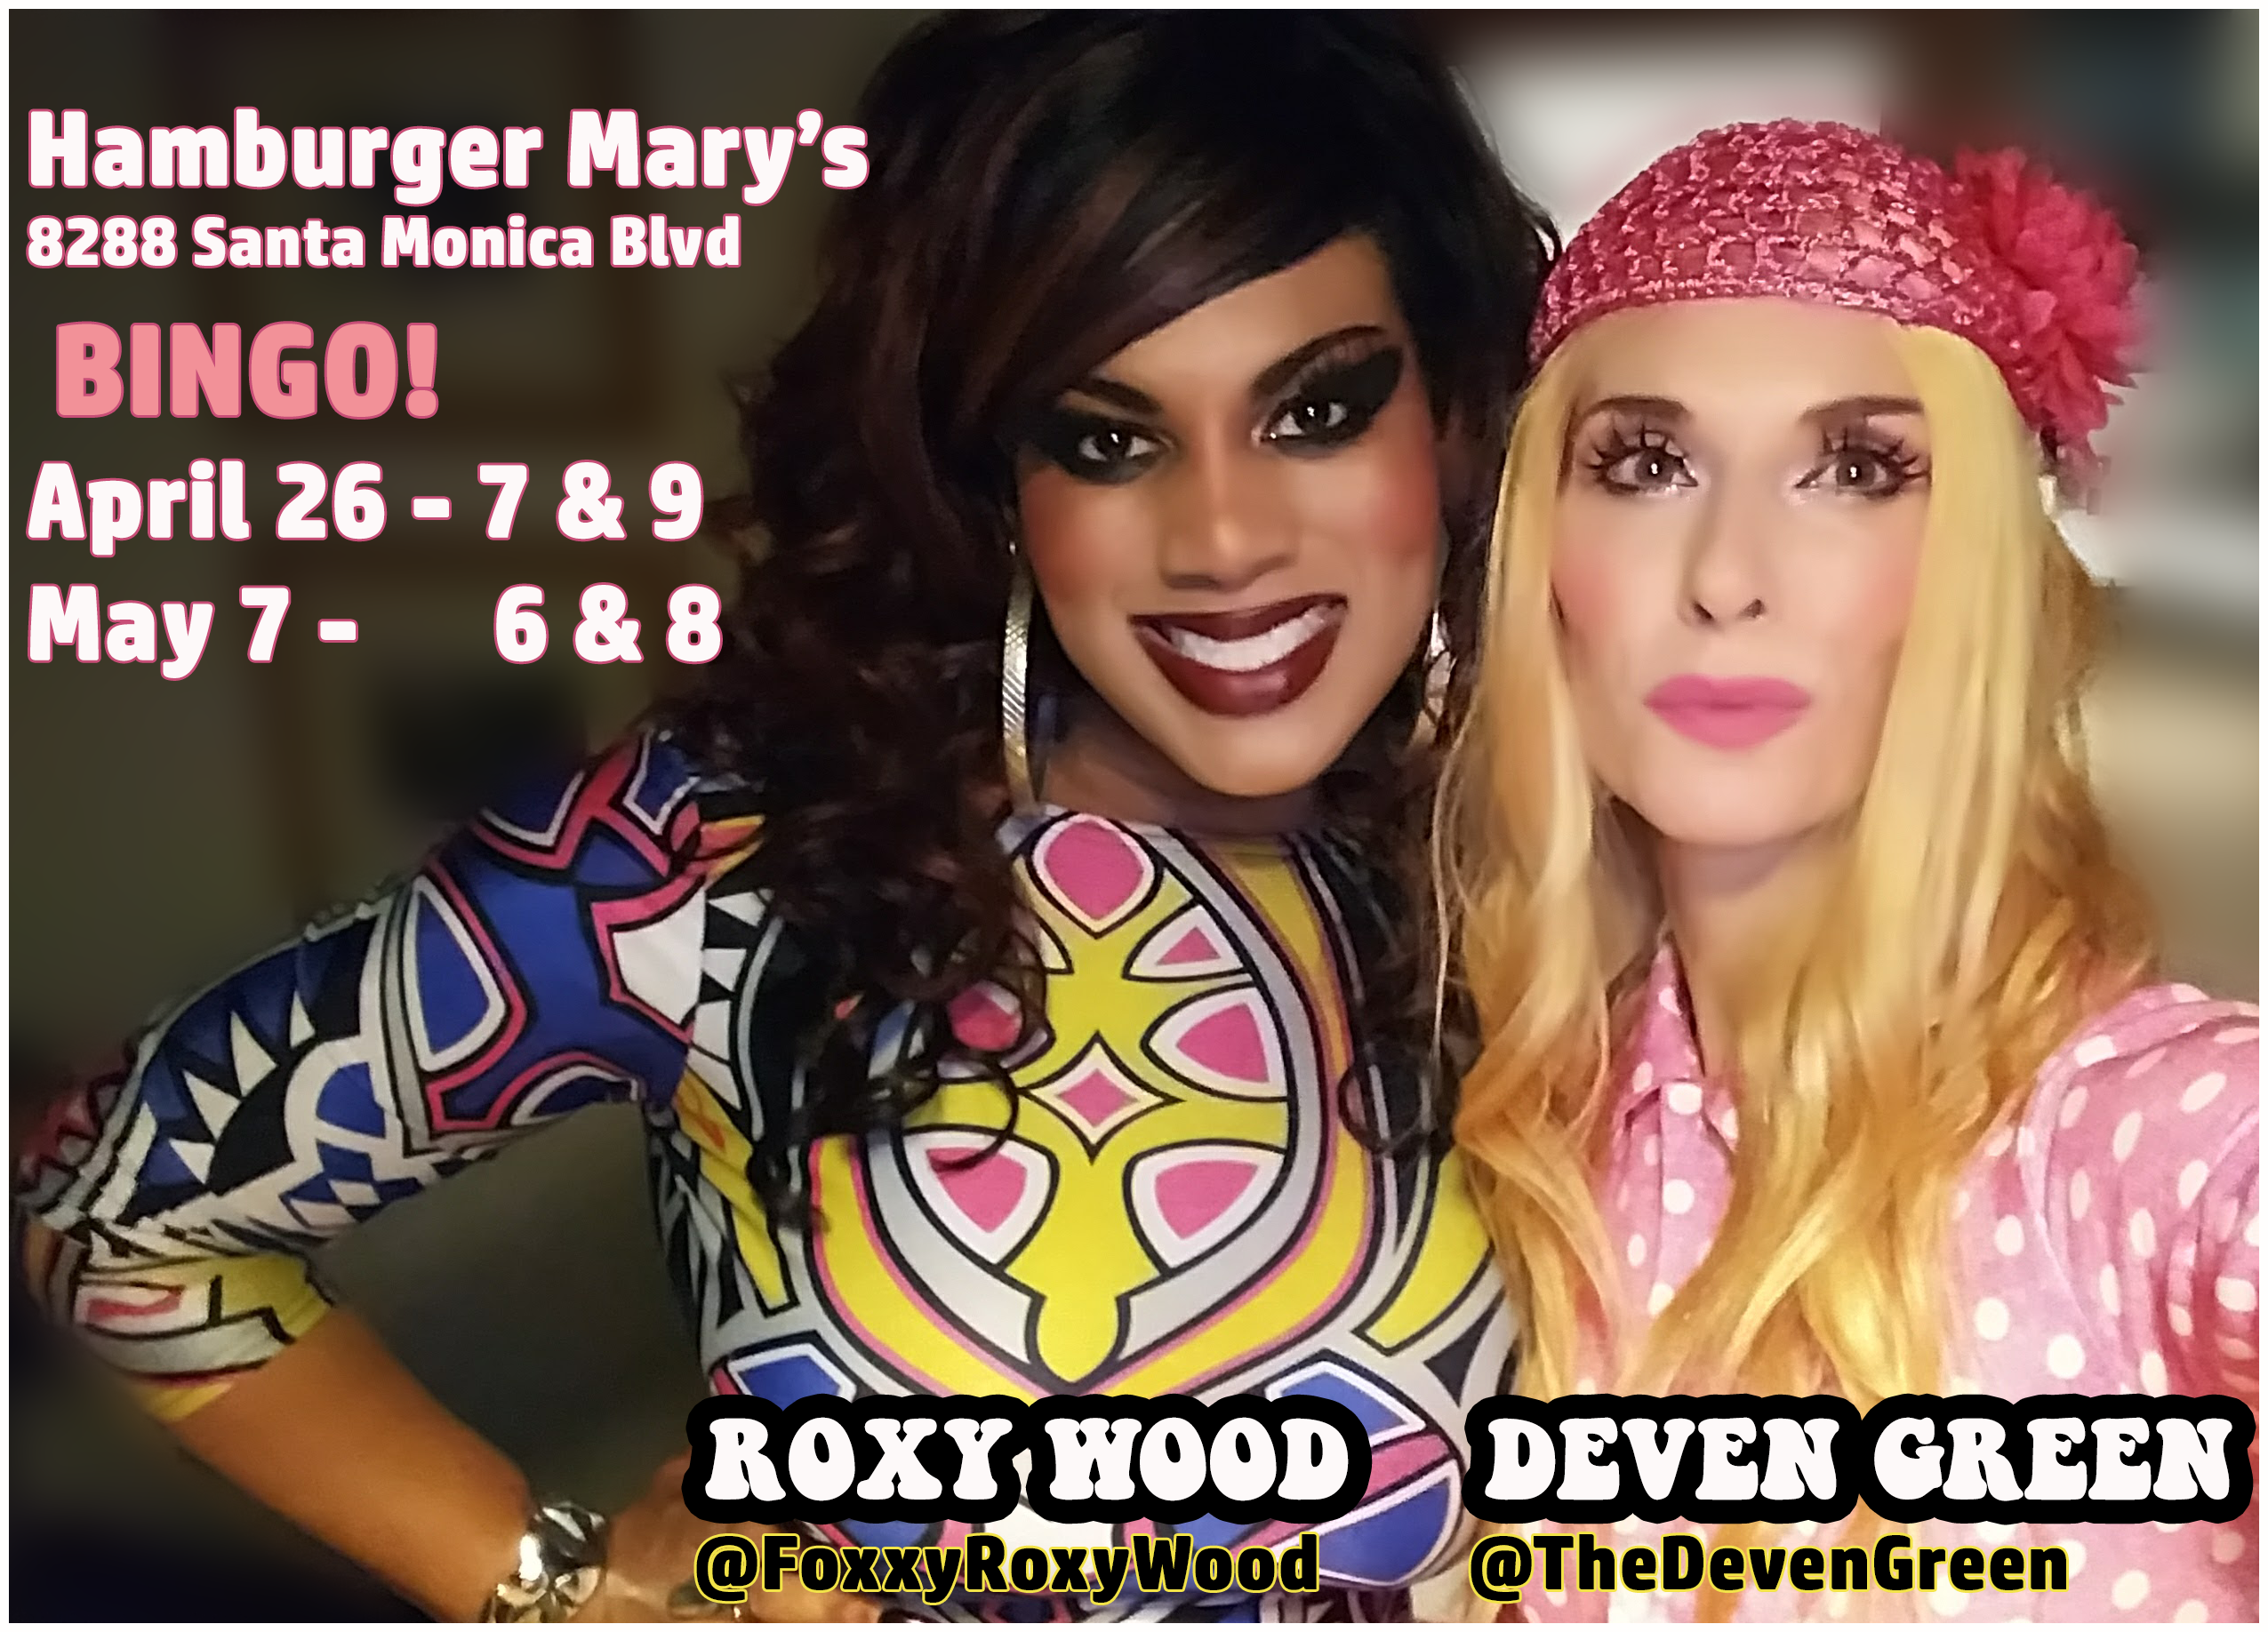 Deven Green Roxy Wood Bingo